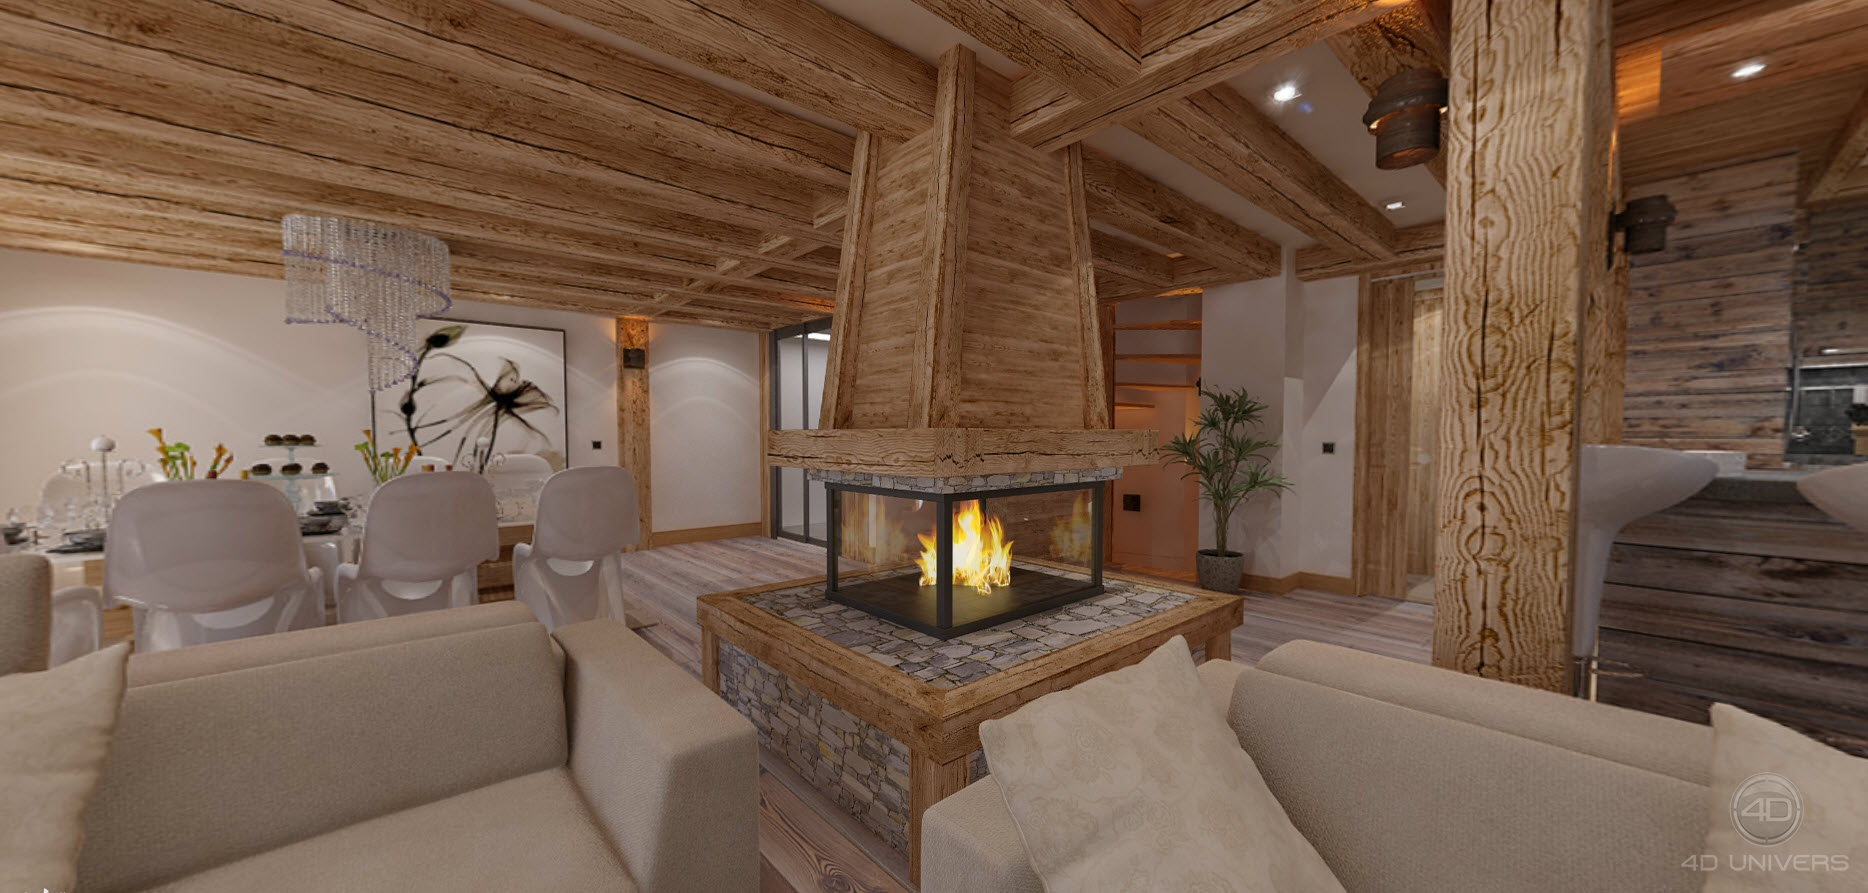 Decoration Interieur Chalet De Luxe Chalet 3d Luxe – 4d Univers • Studio Animation 3d